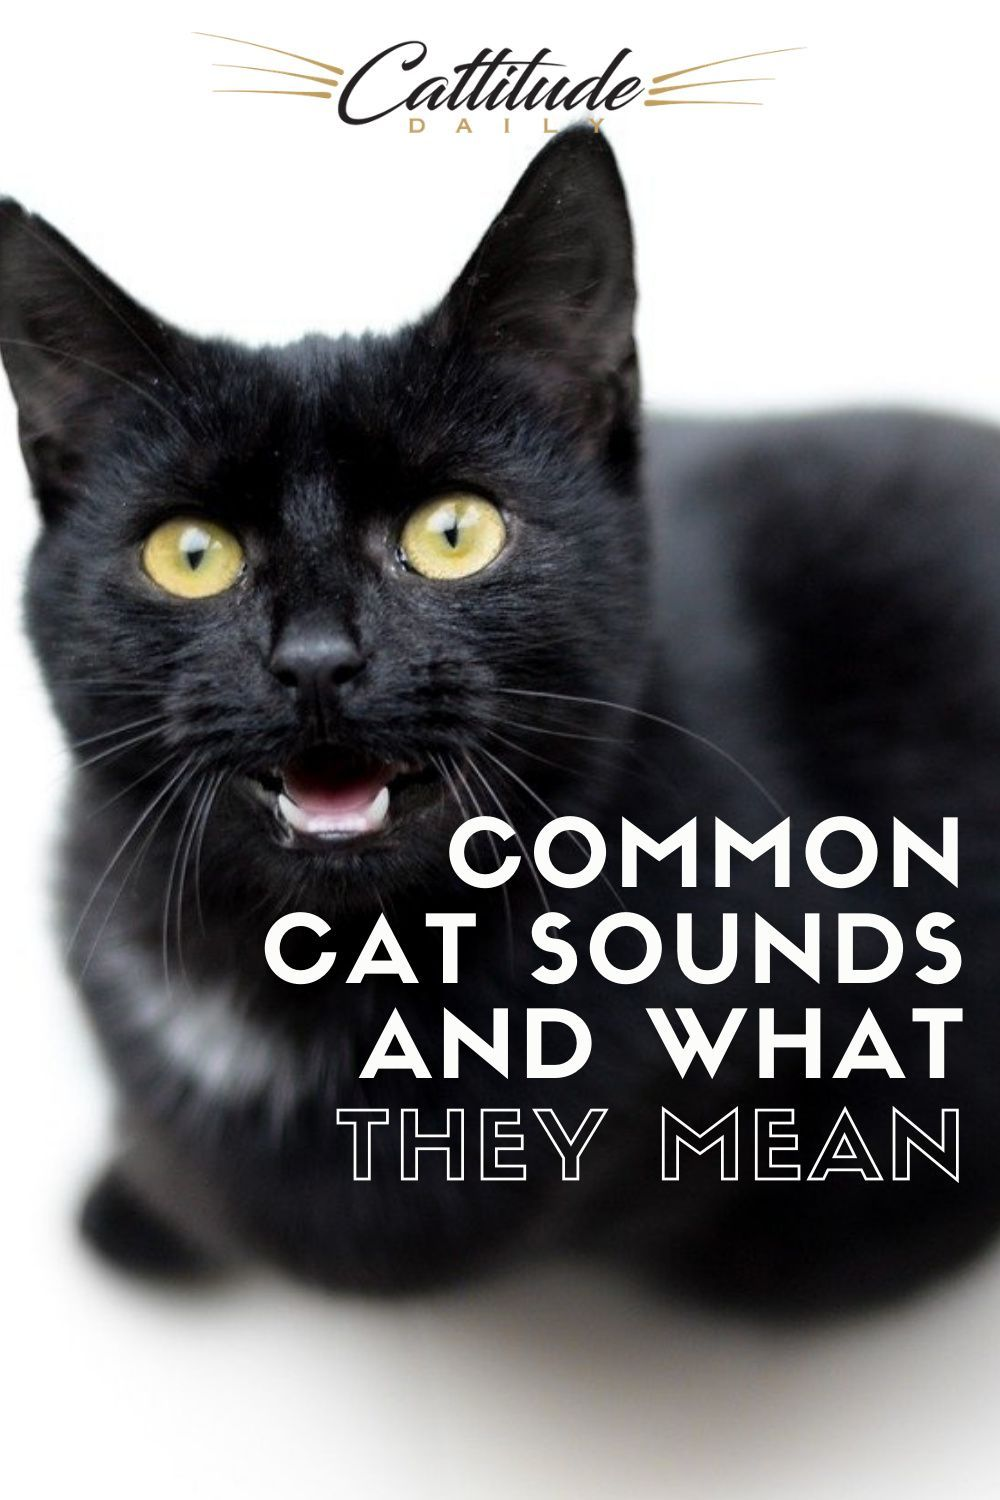 Identifying Common Cat Sounds And What They Mean In 2020 Cat Facts Funny Cats Cat Facts